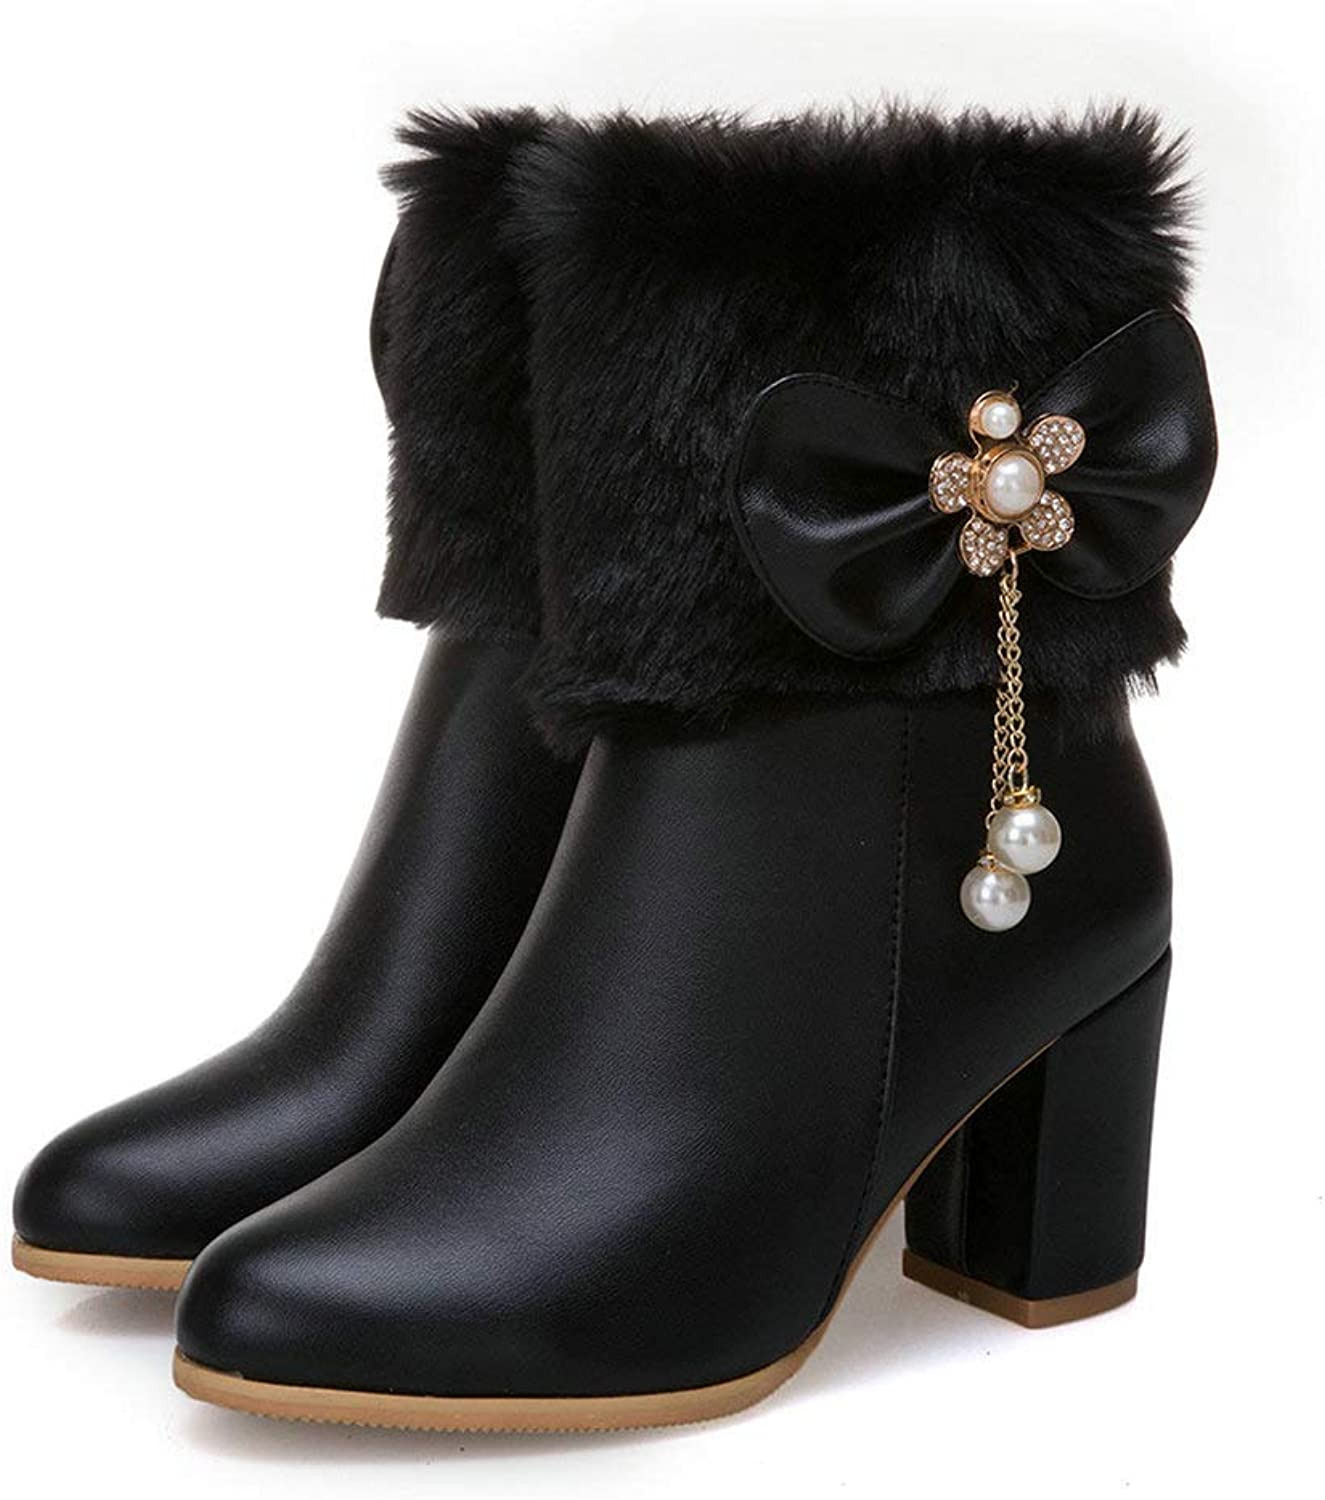 AnMengXinLing Women Ankle Boot Block High Heel Fashion Rhinestone Bows Leather Round Toe Fur Lining Snow Booties Winter White Black